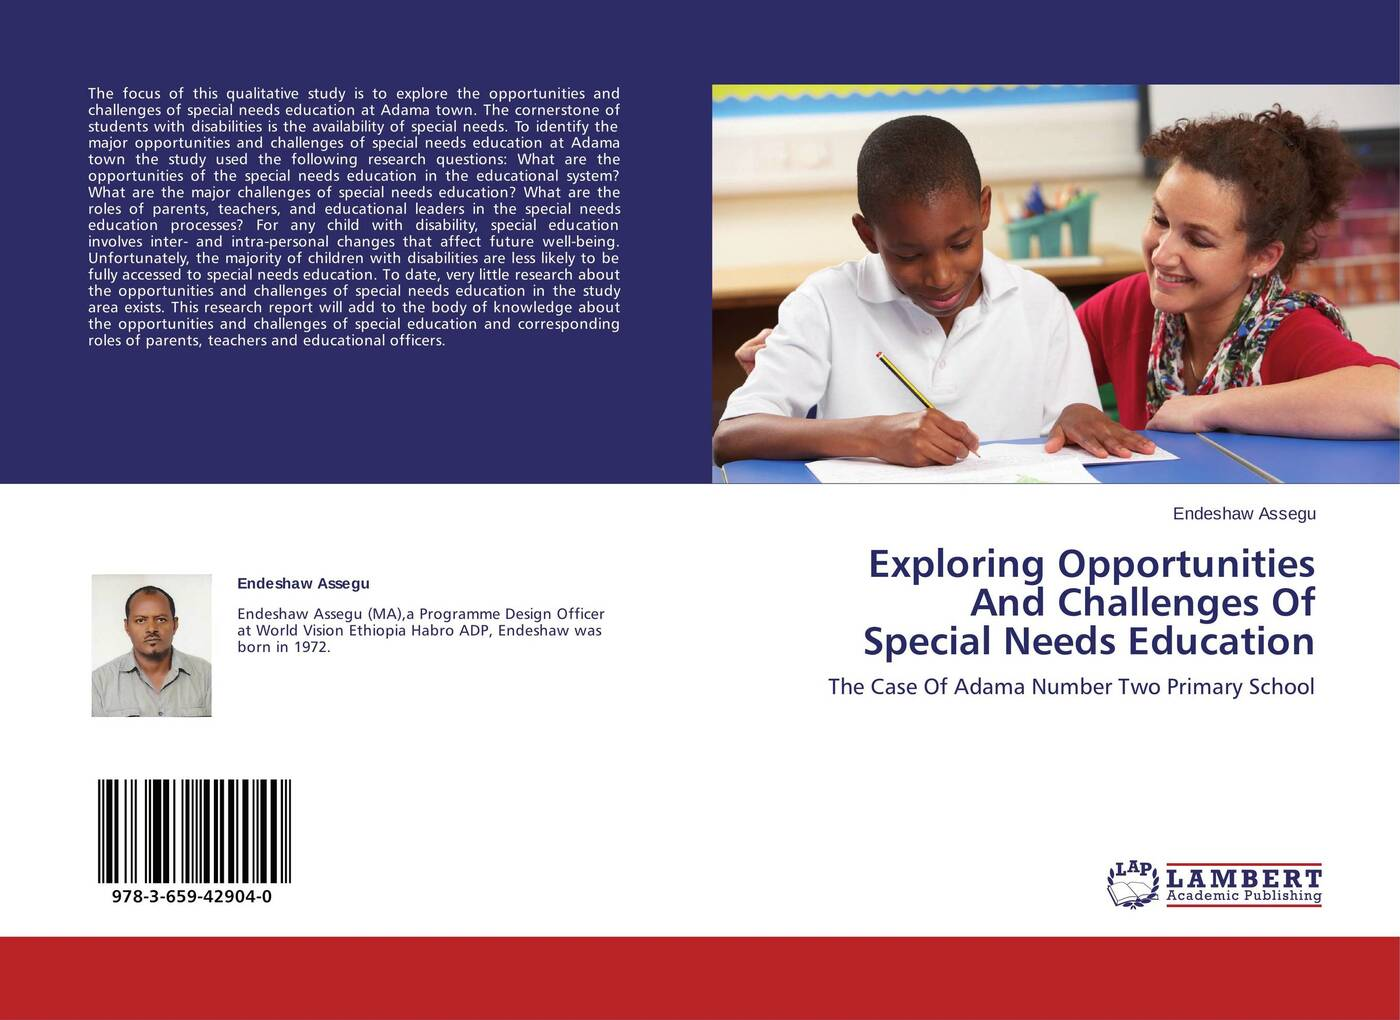 Endeshaw Assegu Exploring Opportunities And Challenges Of Special Needs Education linda j martin essentials of special education diversity in the classroom